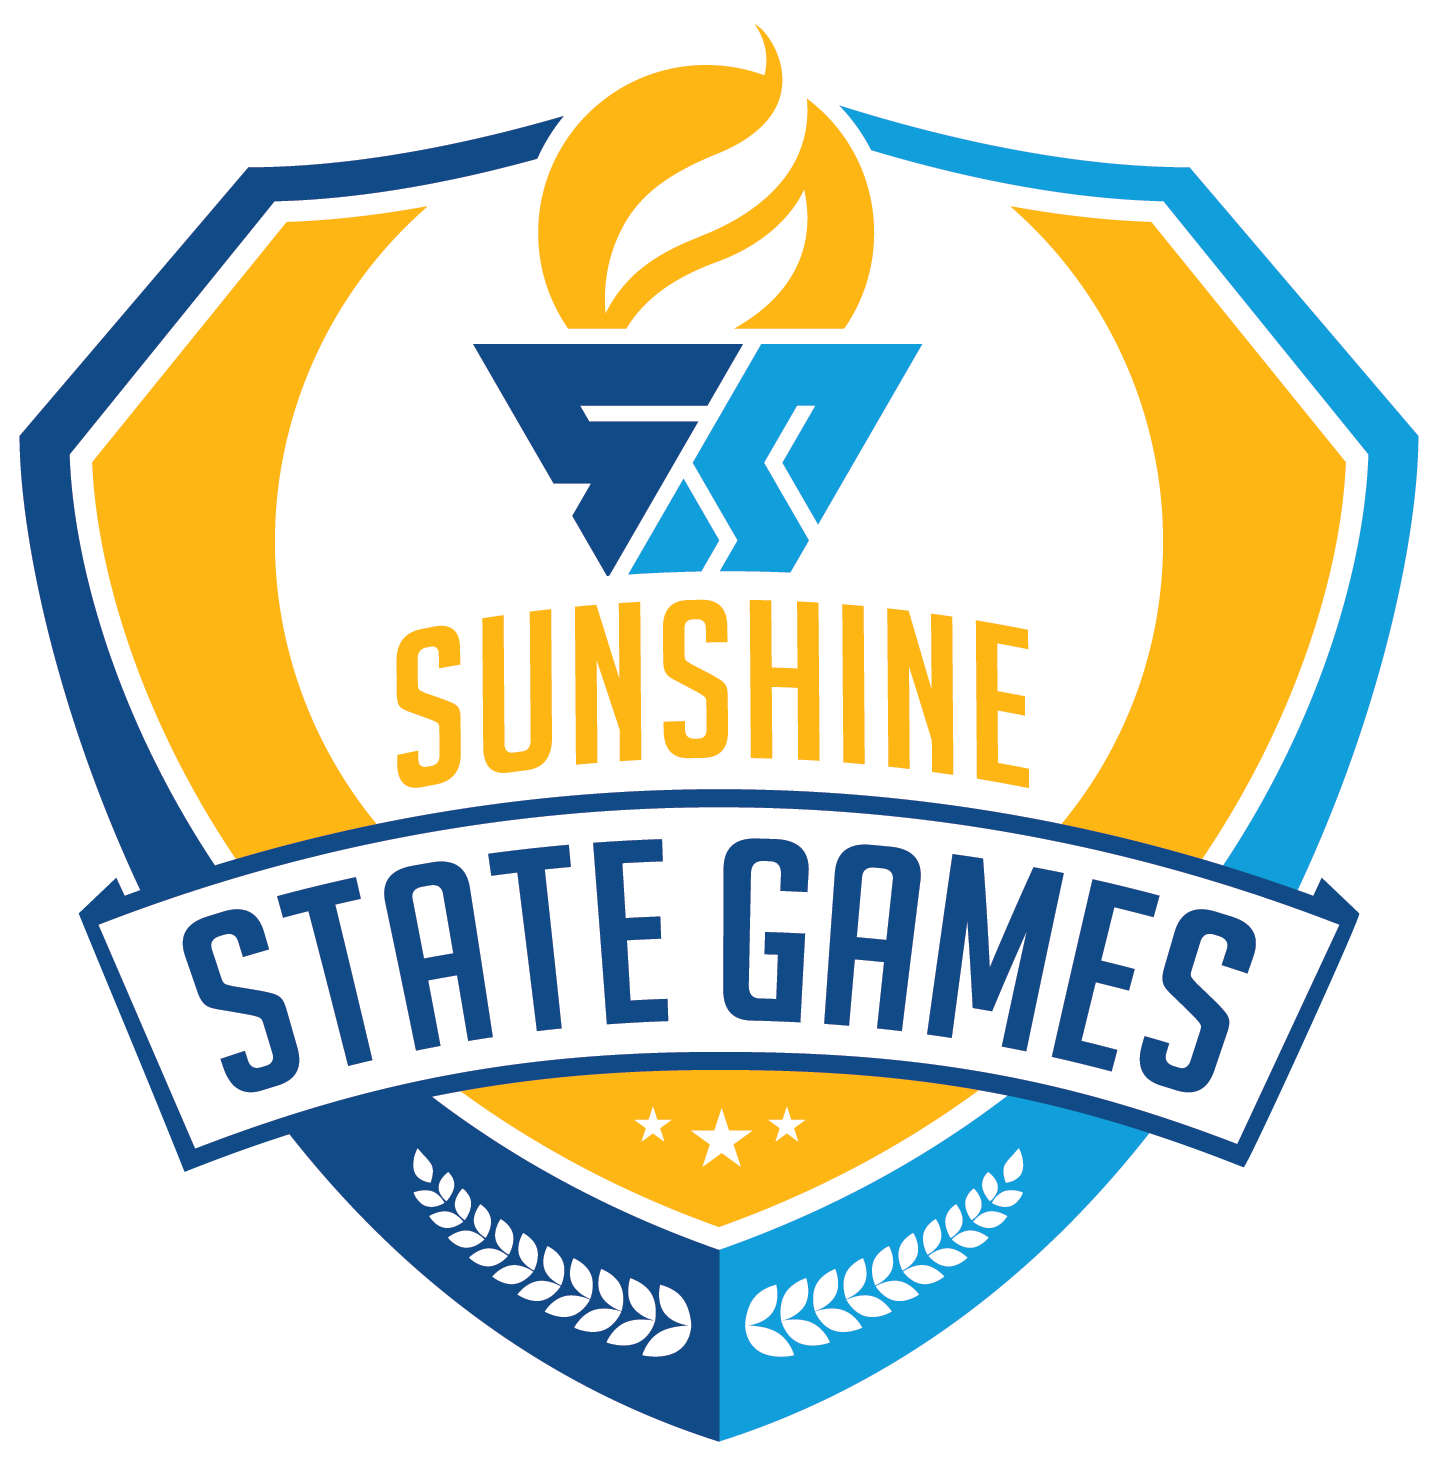 Sunshine State Games Synchronized Swimming